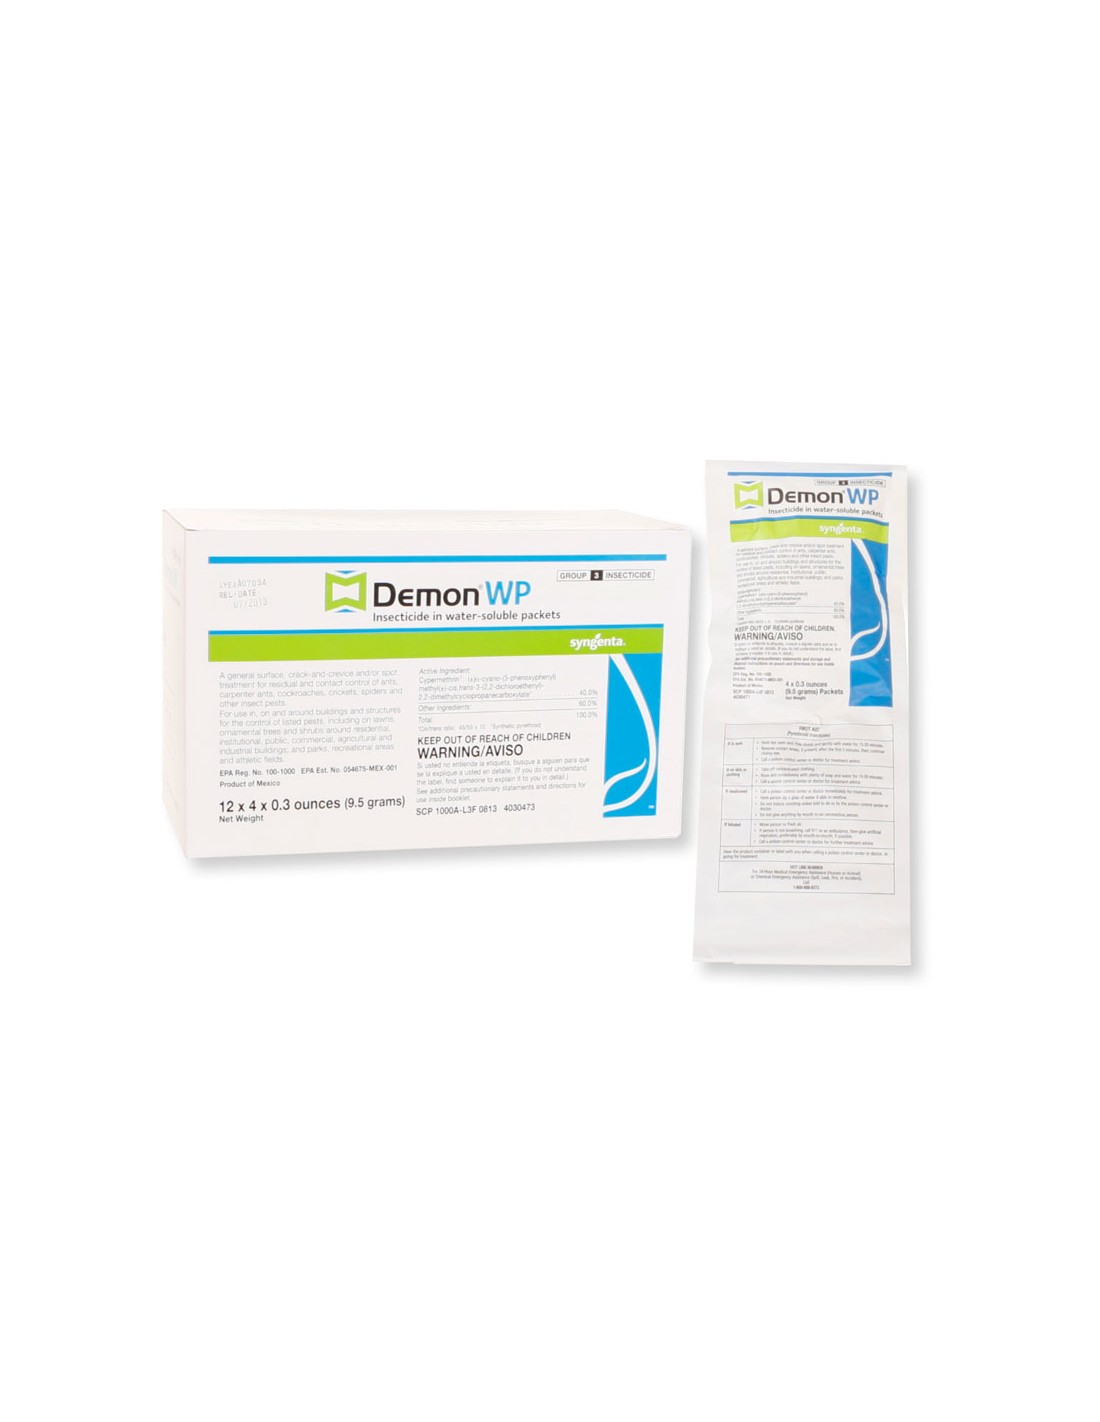 Is indoor spray of demon wp harm my dog after it dries?